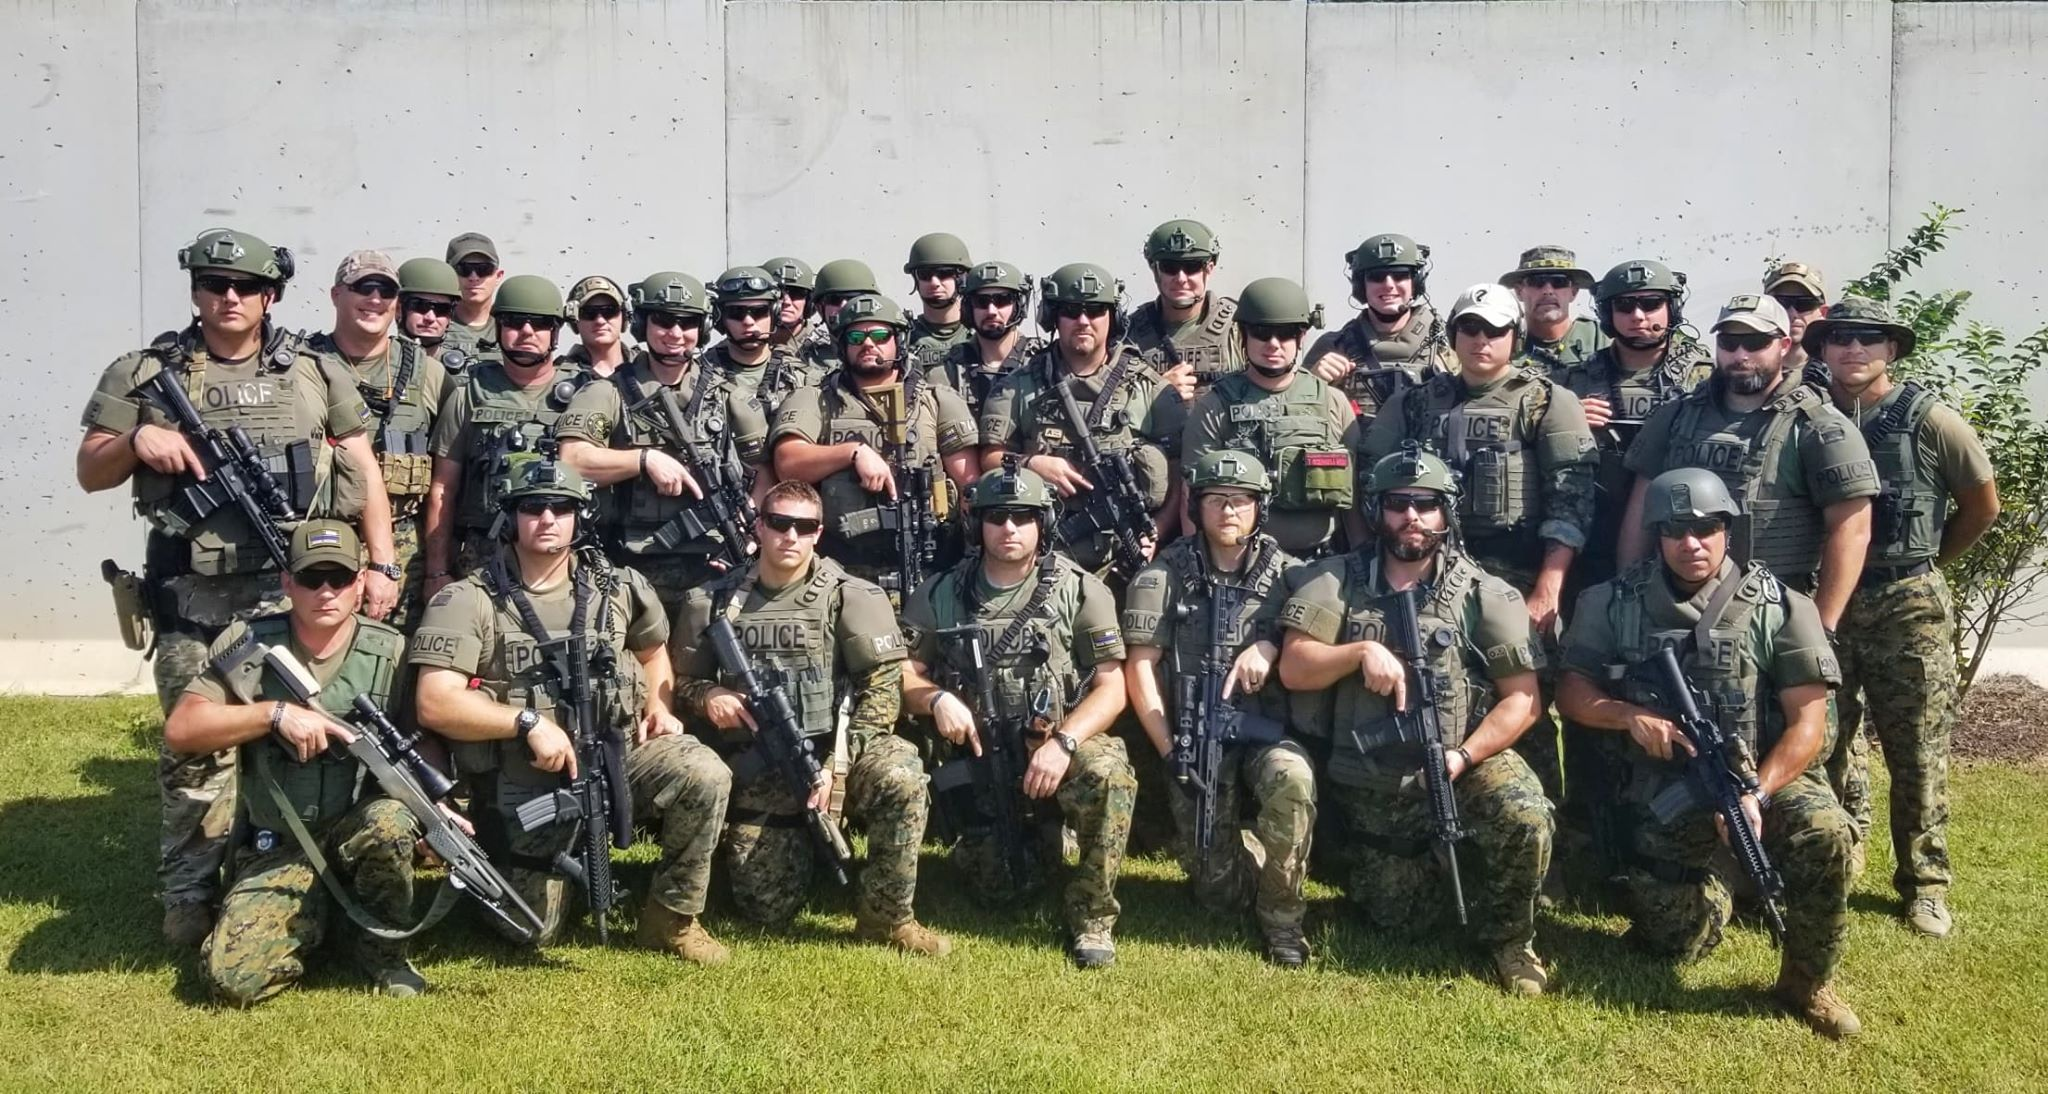 October 2nd Full SWAT Team Group Photo